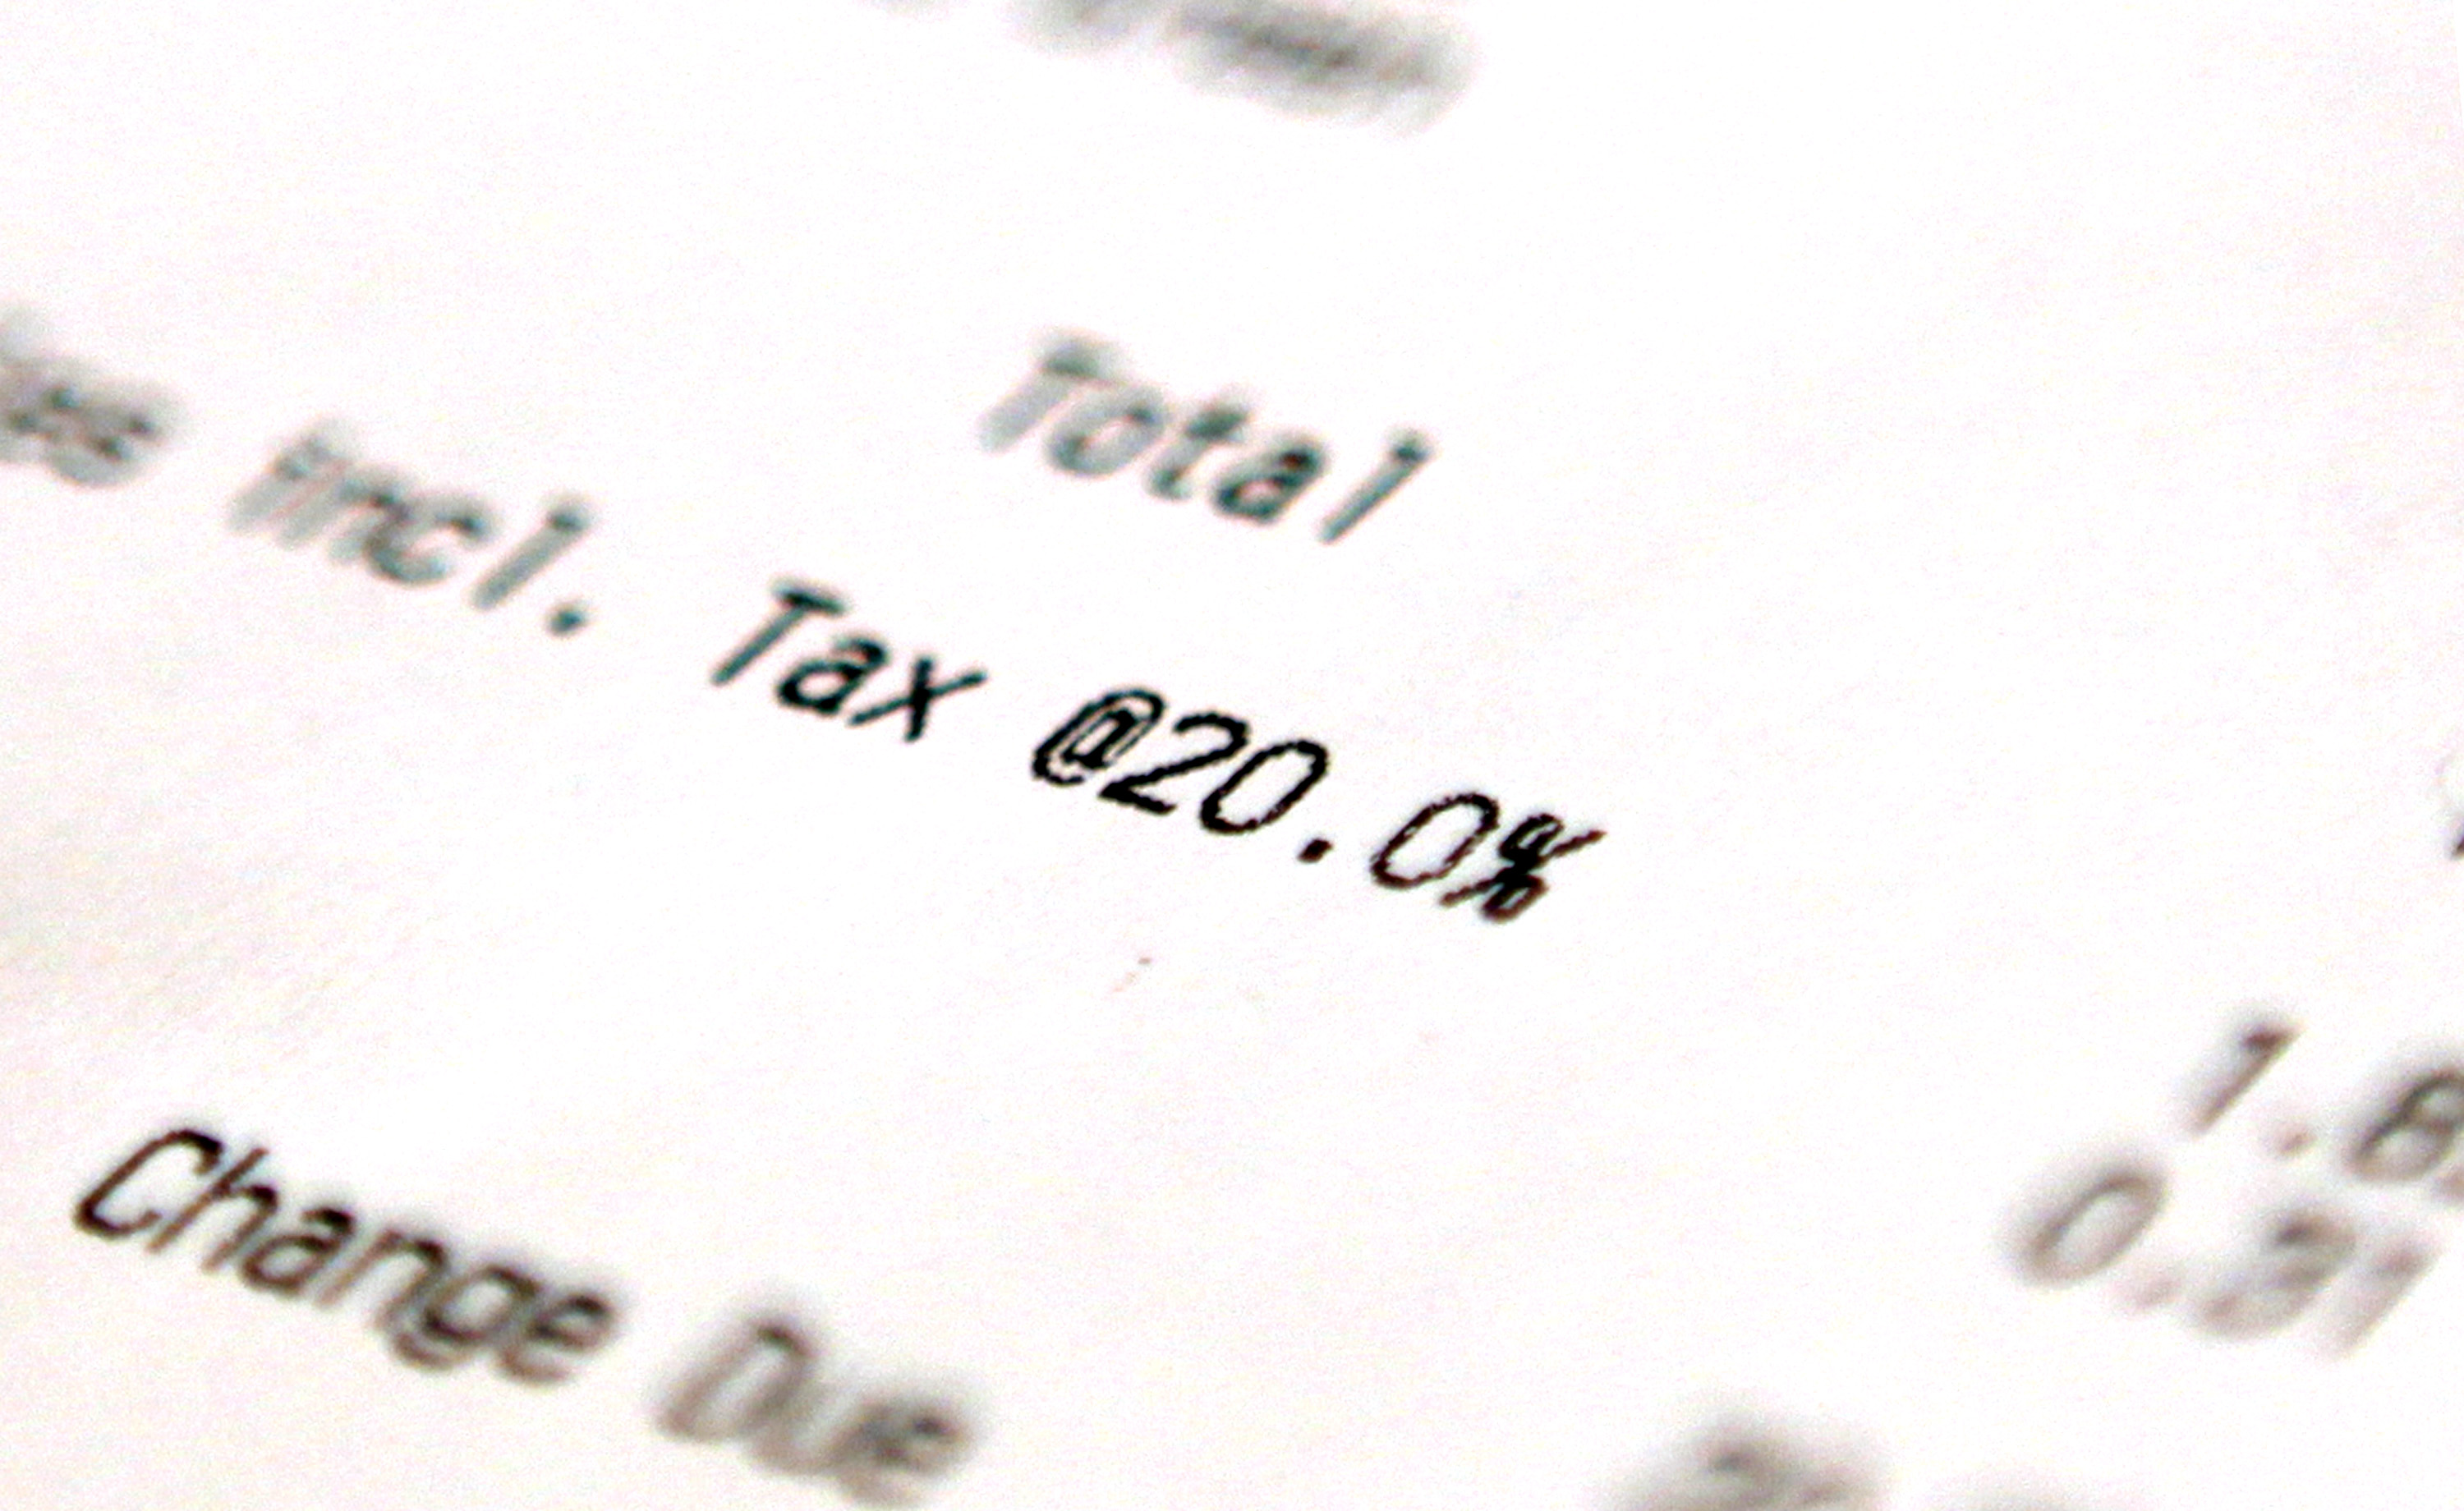 A close-up photo of a U.K. receipt, focussed on the line mentioning VAT, listed at 20 percent.